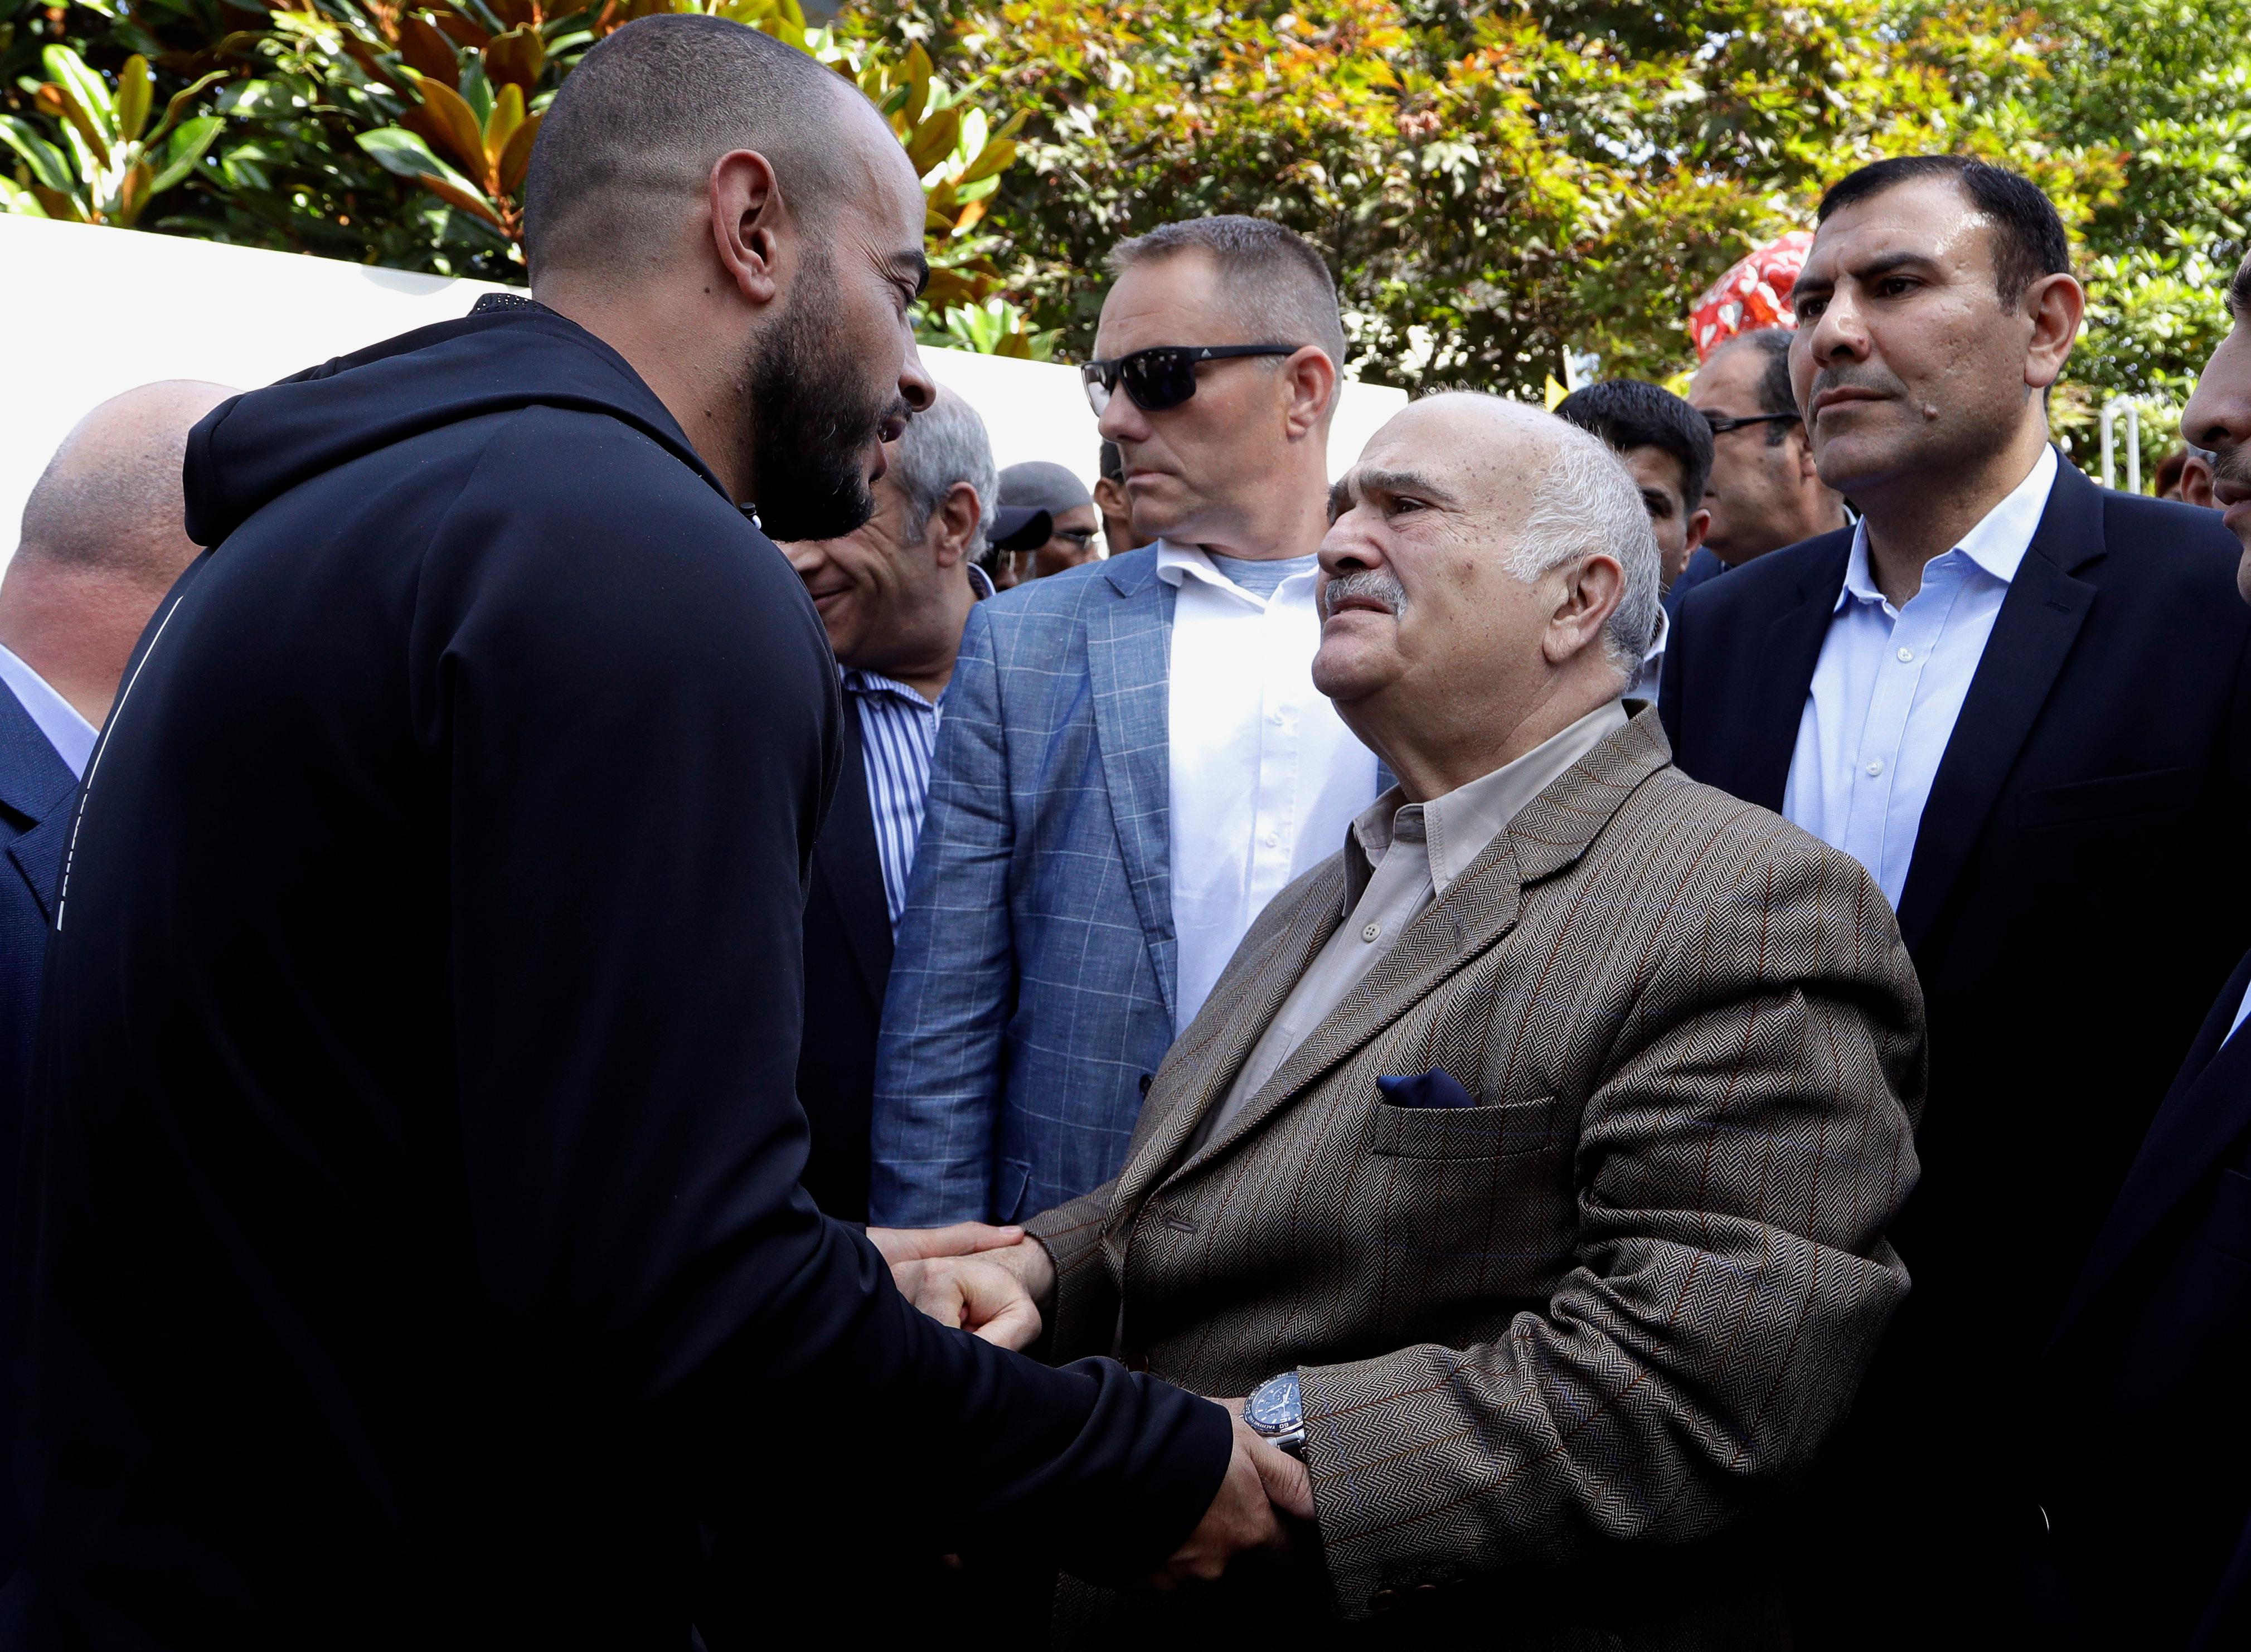 His Royal Highness Prince El Hassan bin Talal Hashemite, second right, of the Kingdom of Jordan greets a worshipper outside the Al Noor mosque in Christchurch, New Zealand, Saturday, March 23, 2019. The mosque reopened today following the March 15 mass shooting. (AP Photo/Mark Baker)